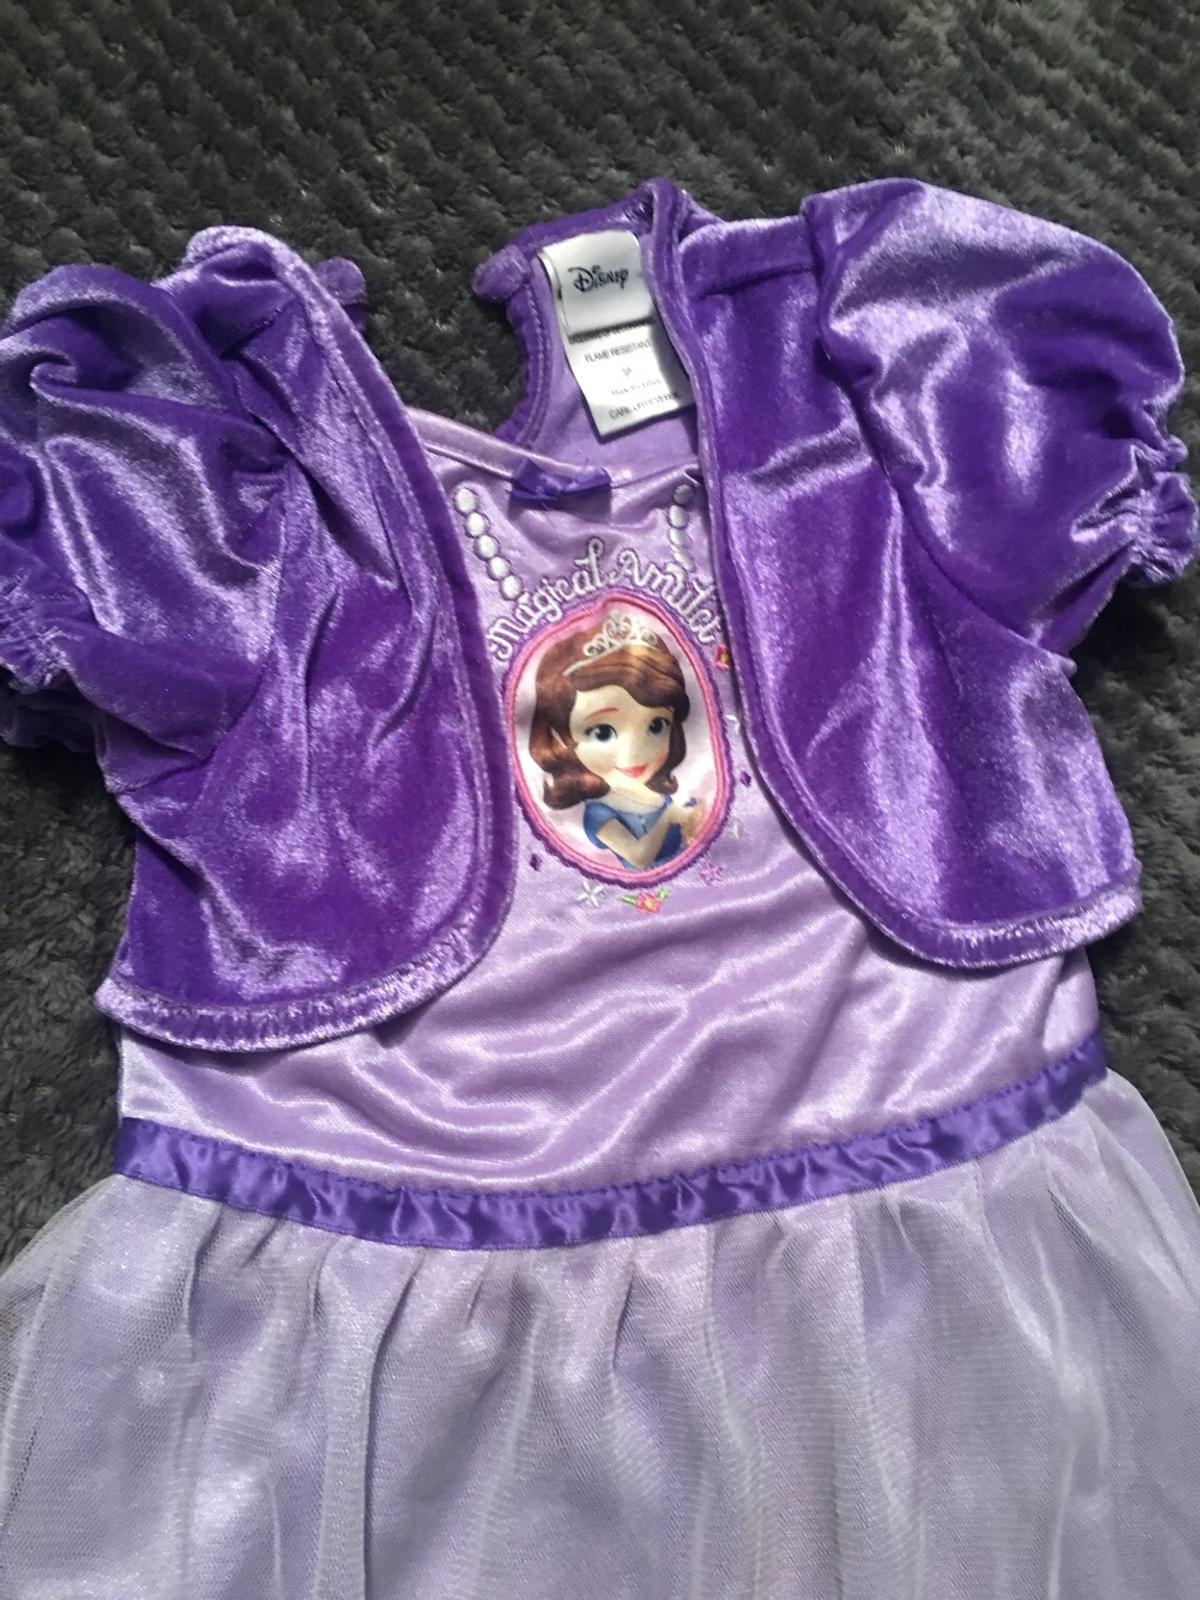 Beautiful crushed velvet on the waistcoat, sleeves and back. Polyester and net for the skirt. Princess Sofia face on her amulet. Mauve Color. beautful flower motifs at the bottom In good condition. Come and get it for book day!!!